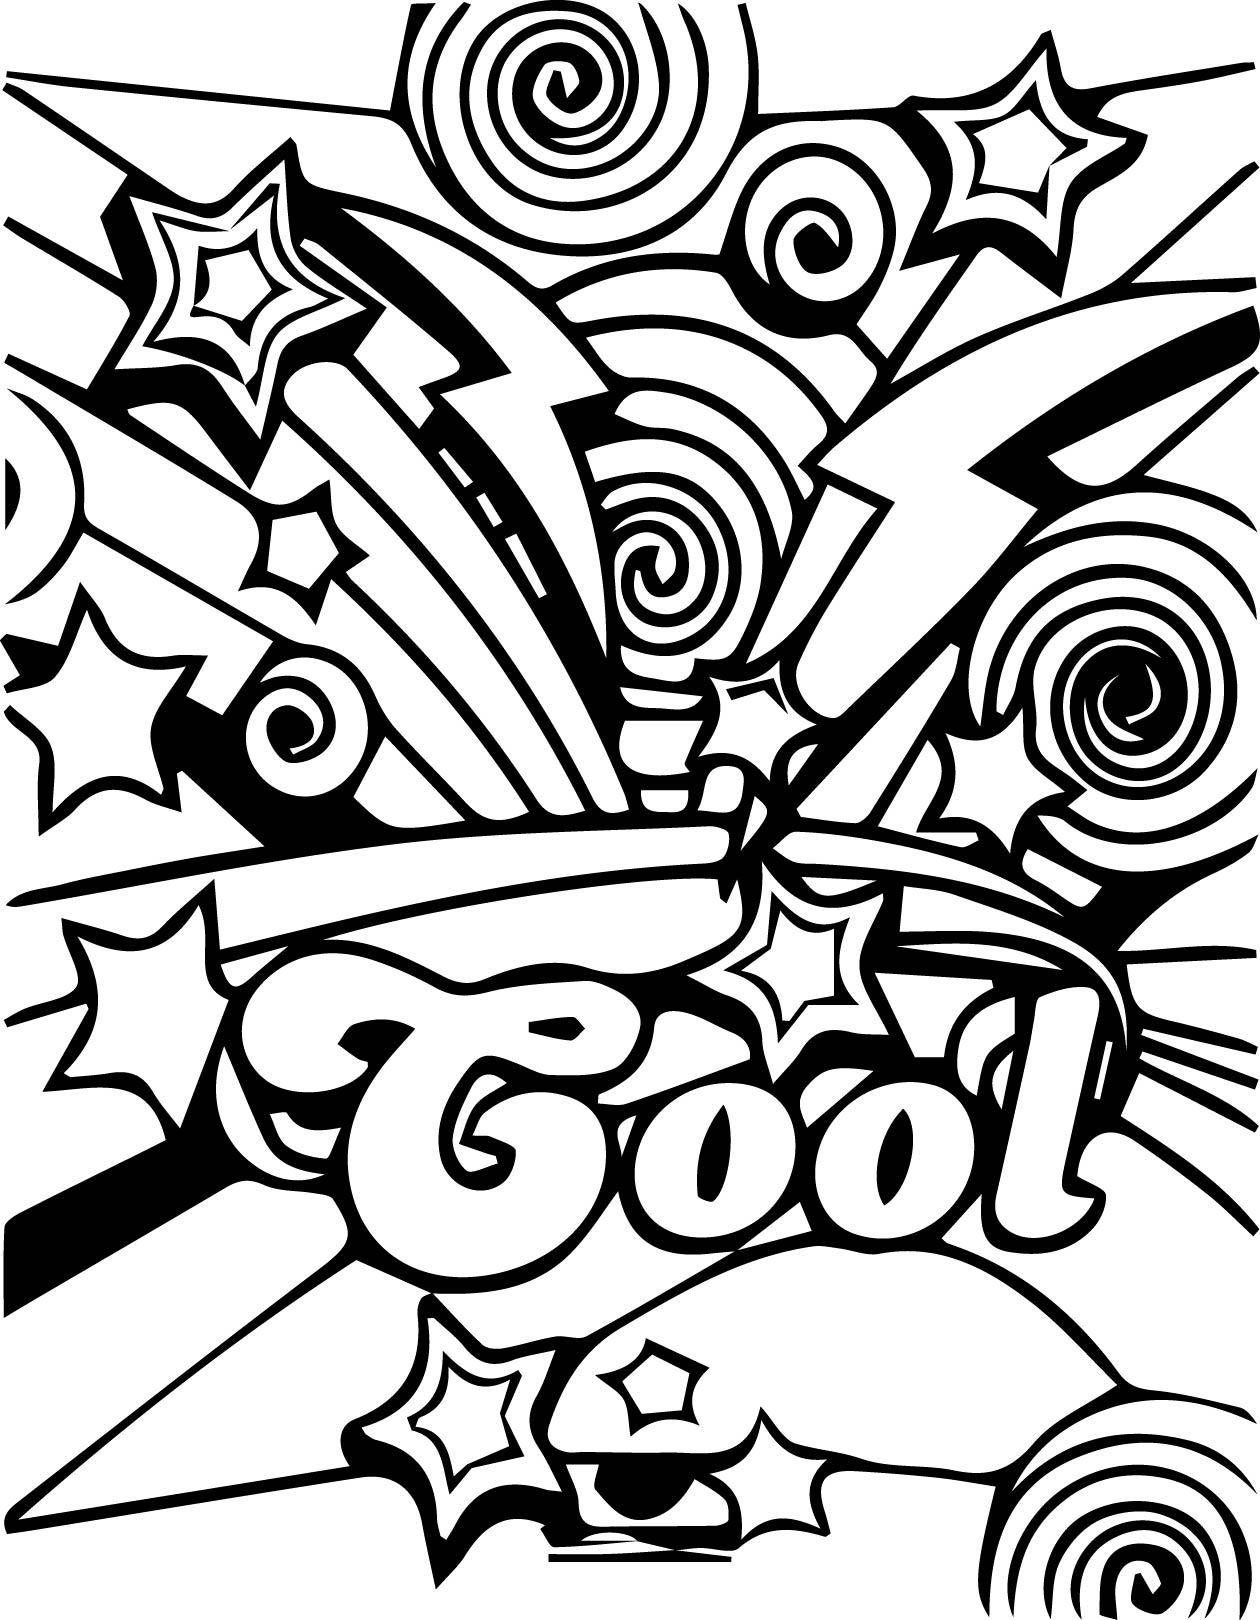 cool coloring sheets for teenagers cool coloring pages for teenagers coloring home cool sheets teenagers for coloring